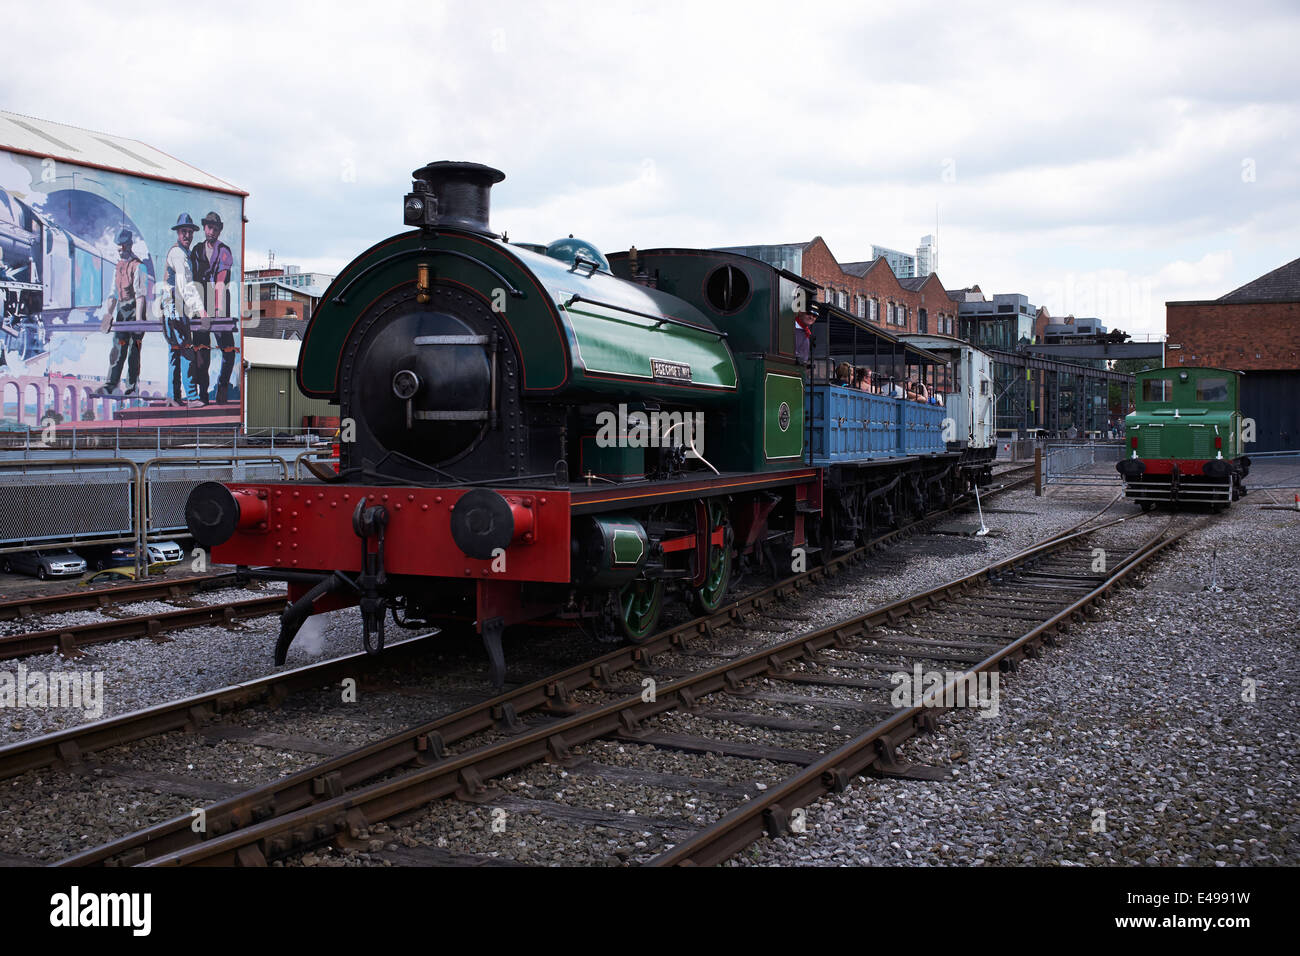 Steam train at the Museum of Science and Industry in Manchester city centre UK - Stock Image